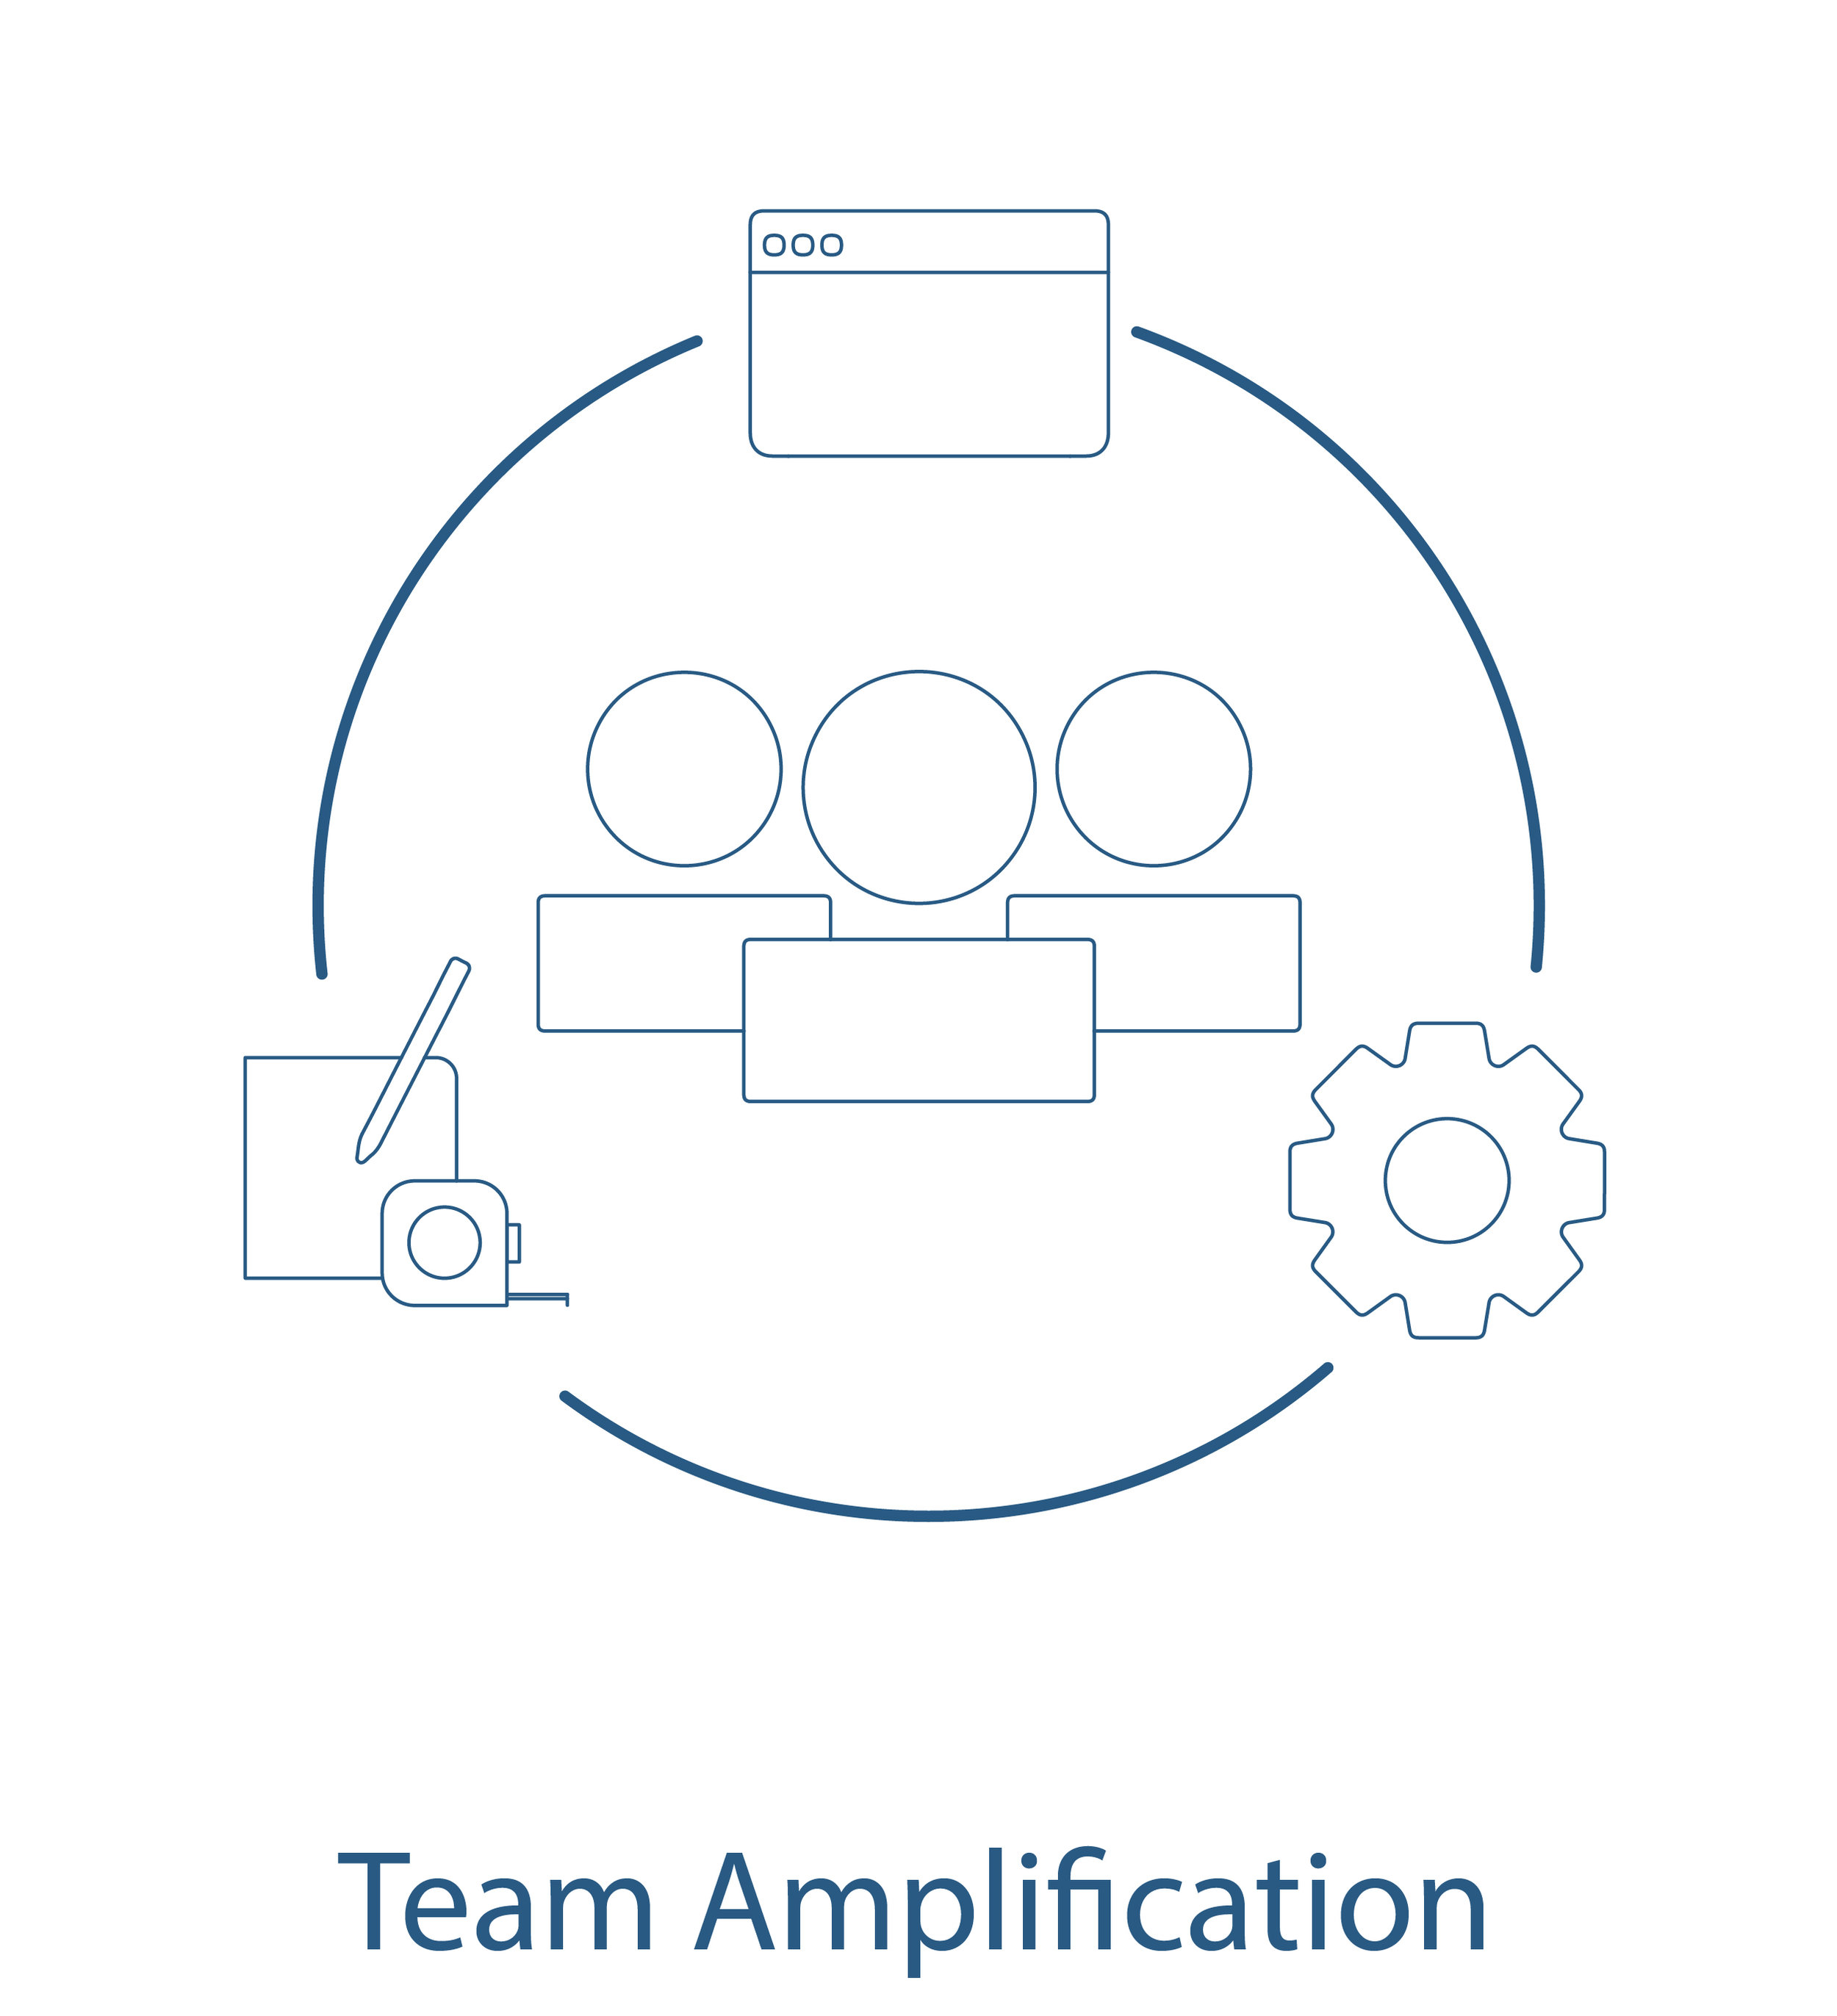 teamamplification-07.jpg